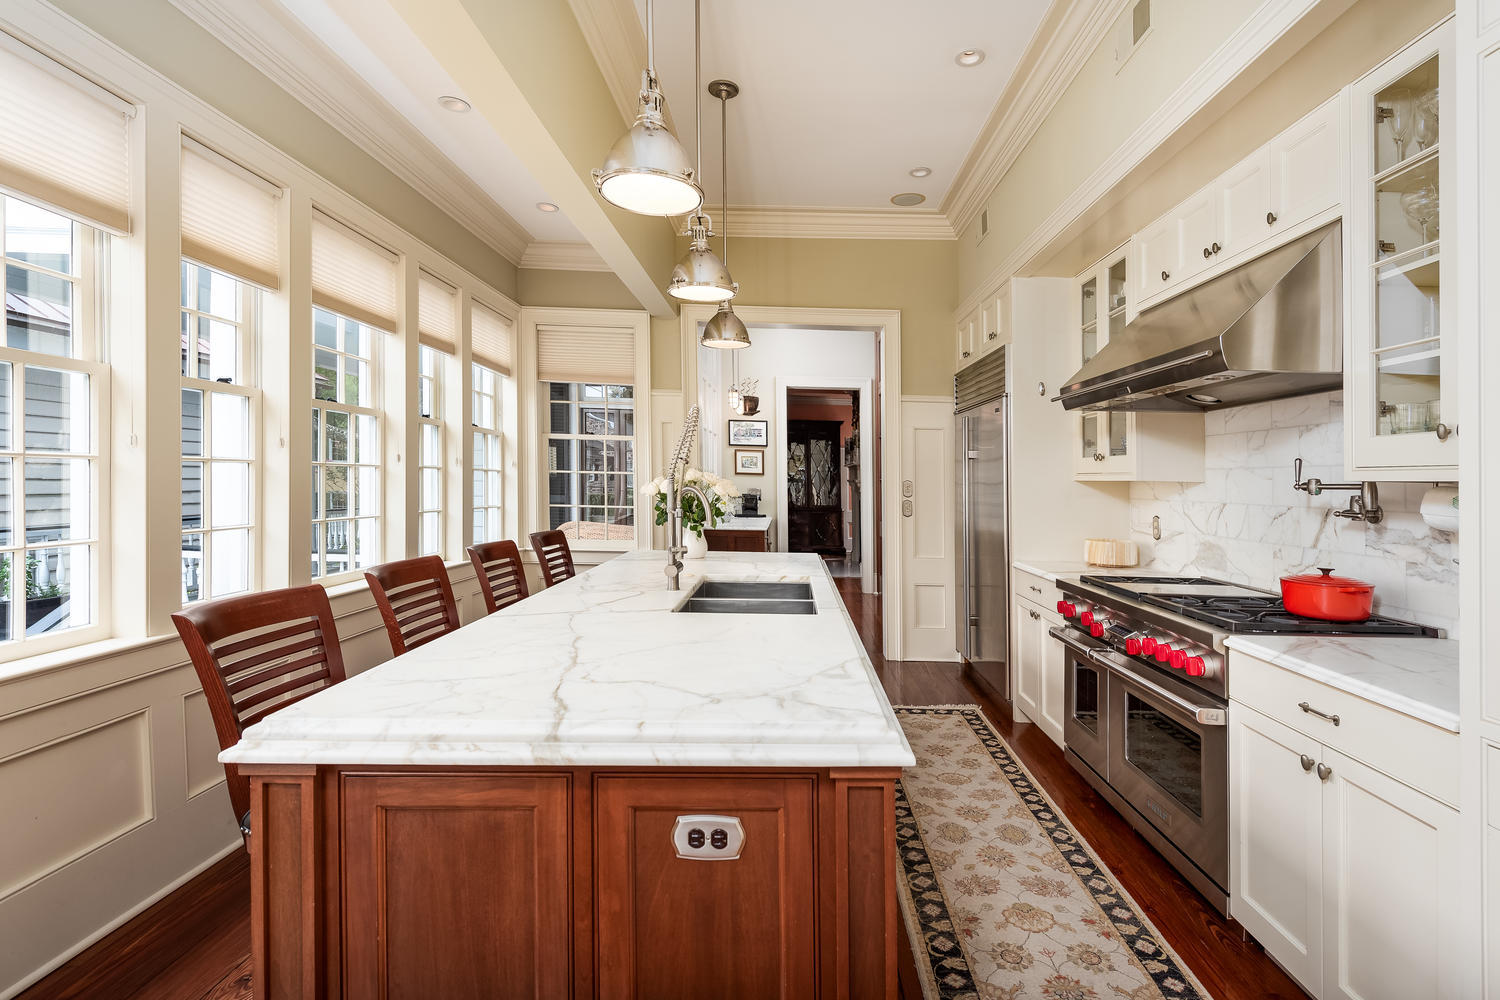 South of Broad Homes For Sale - 66 Church, Charleston, SC - 34